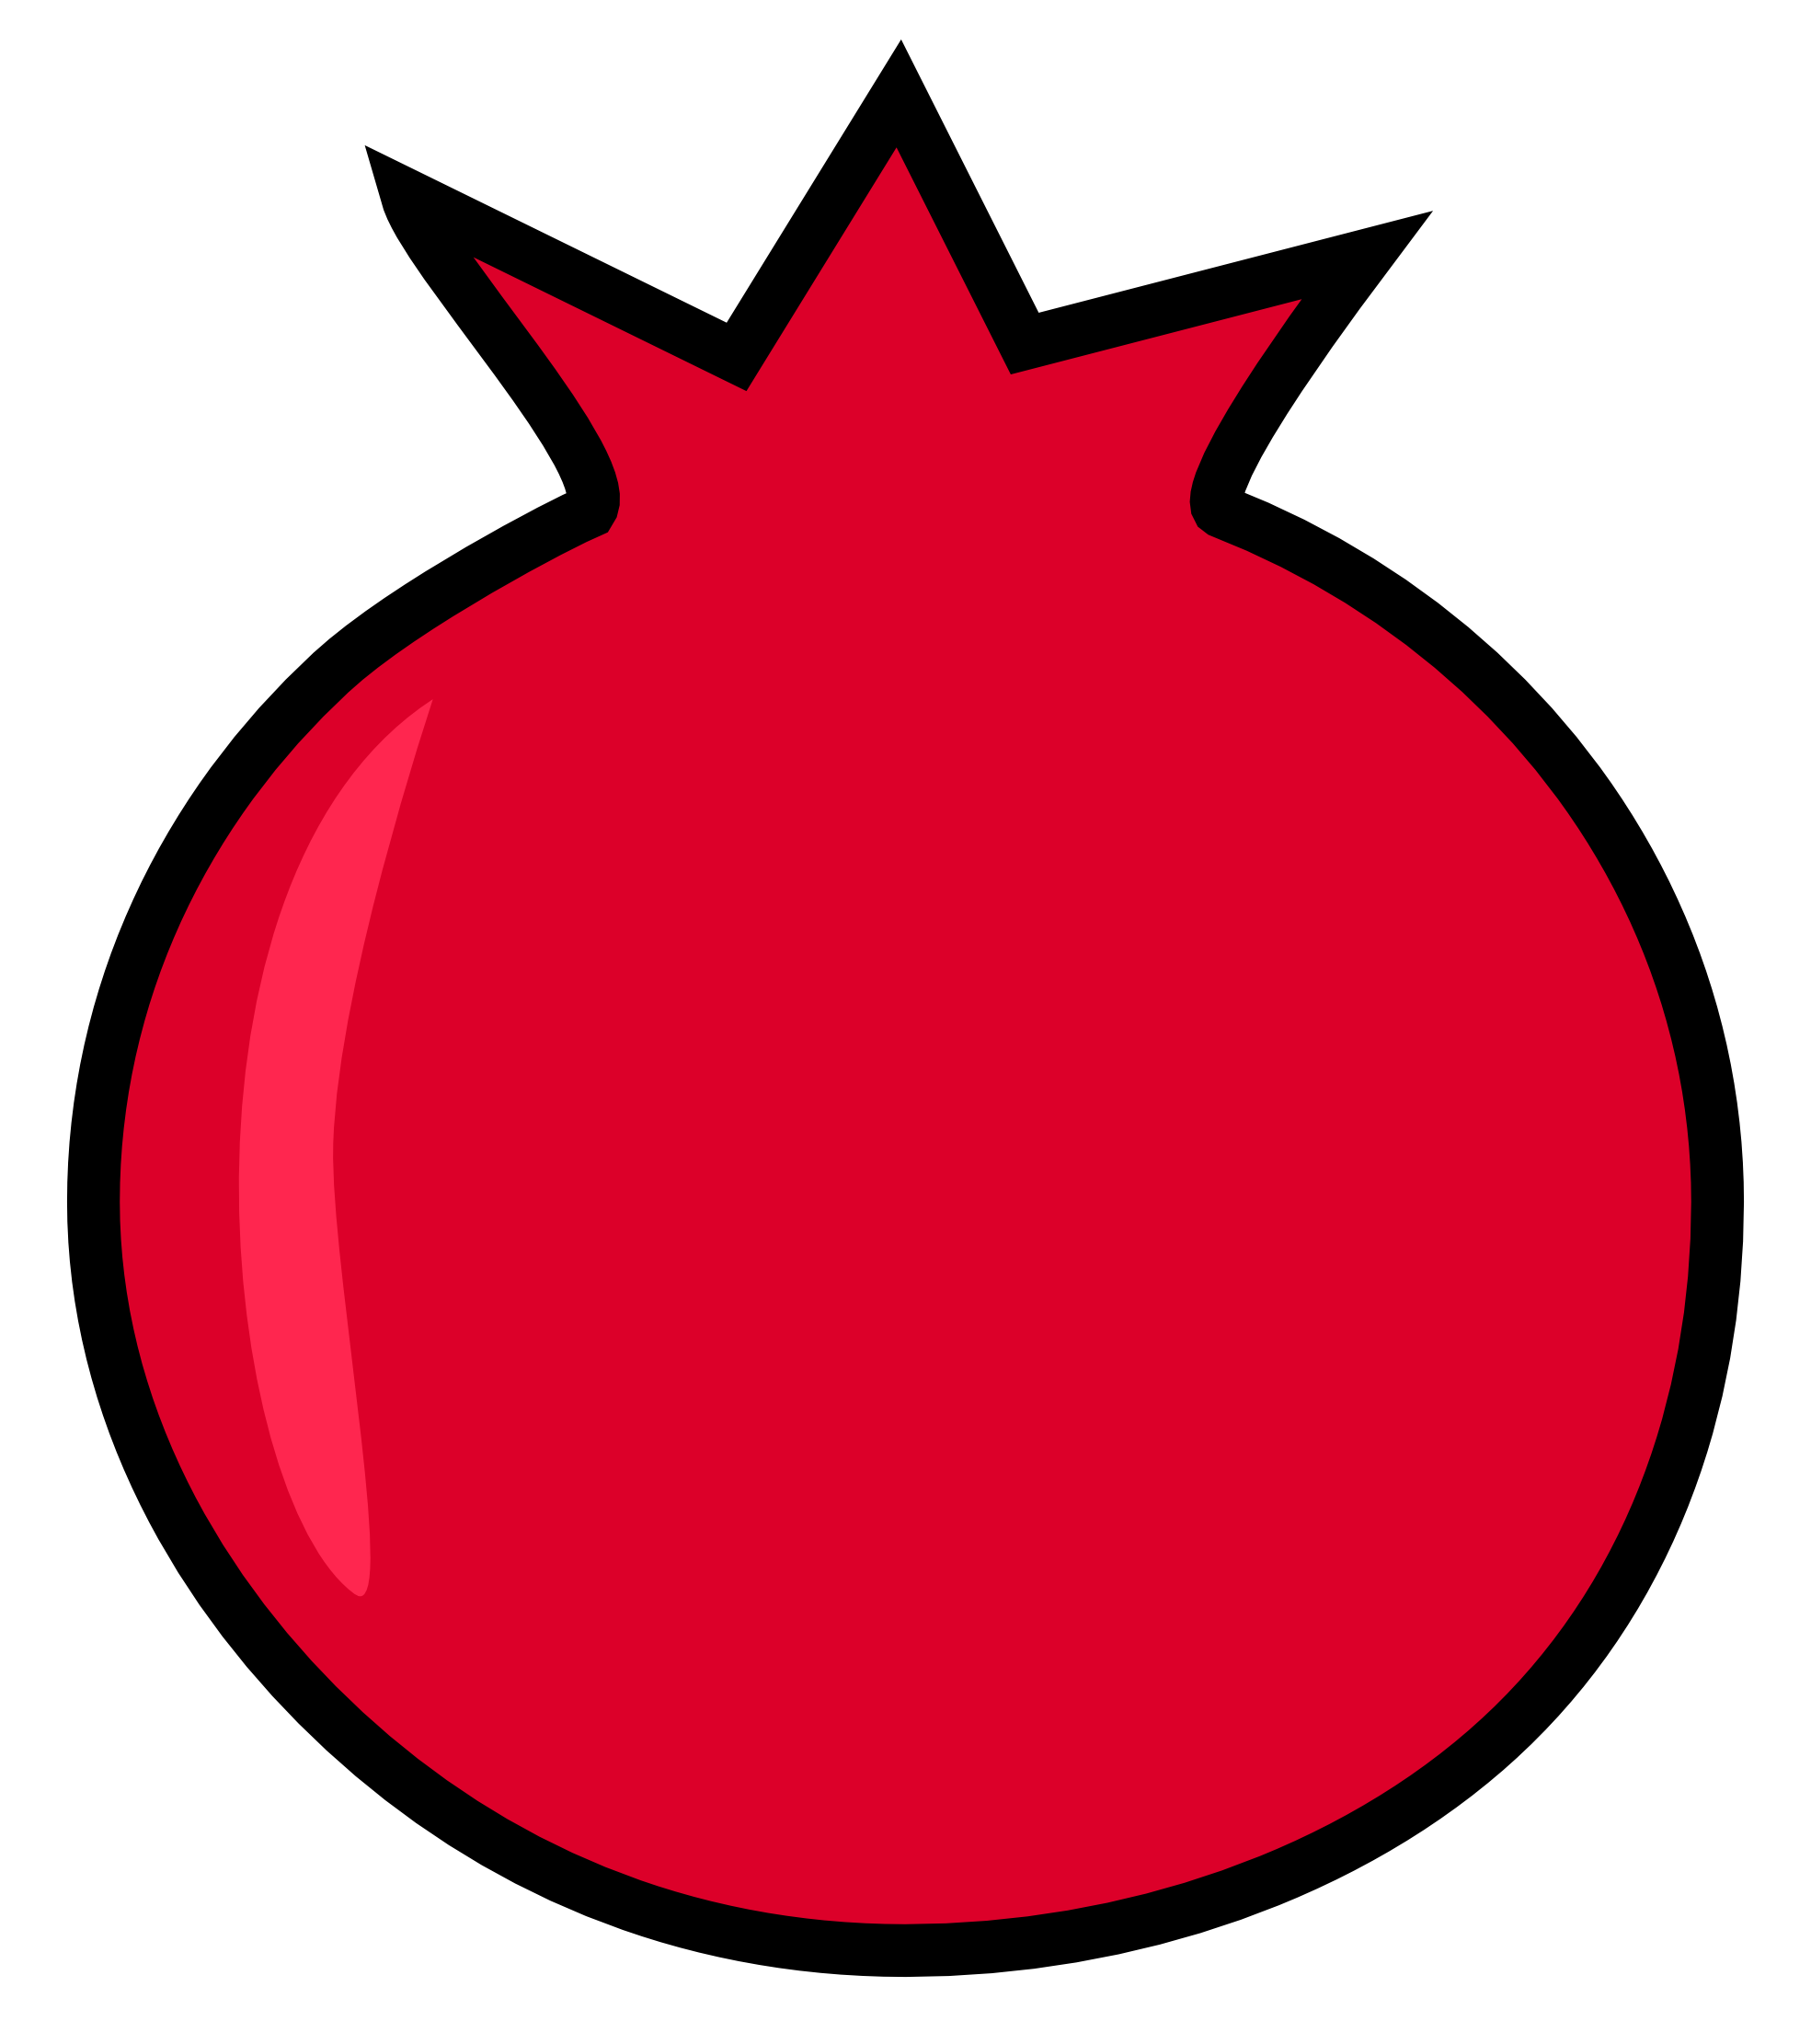 Pomegranate png drawing. Free download images icons